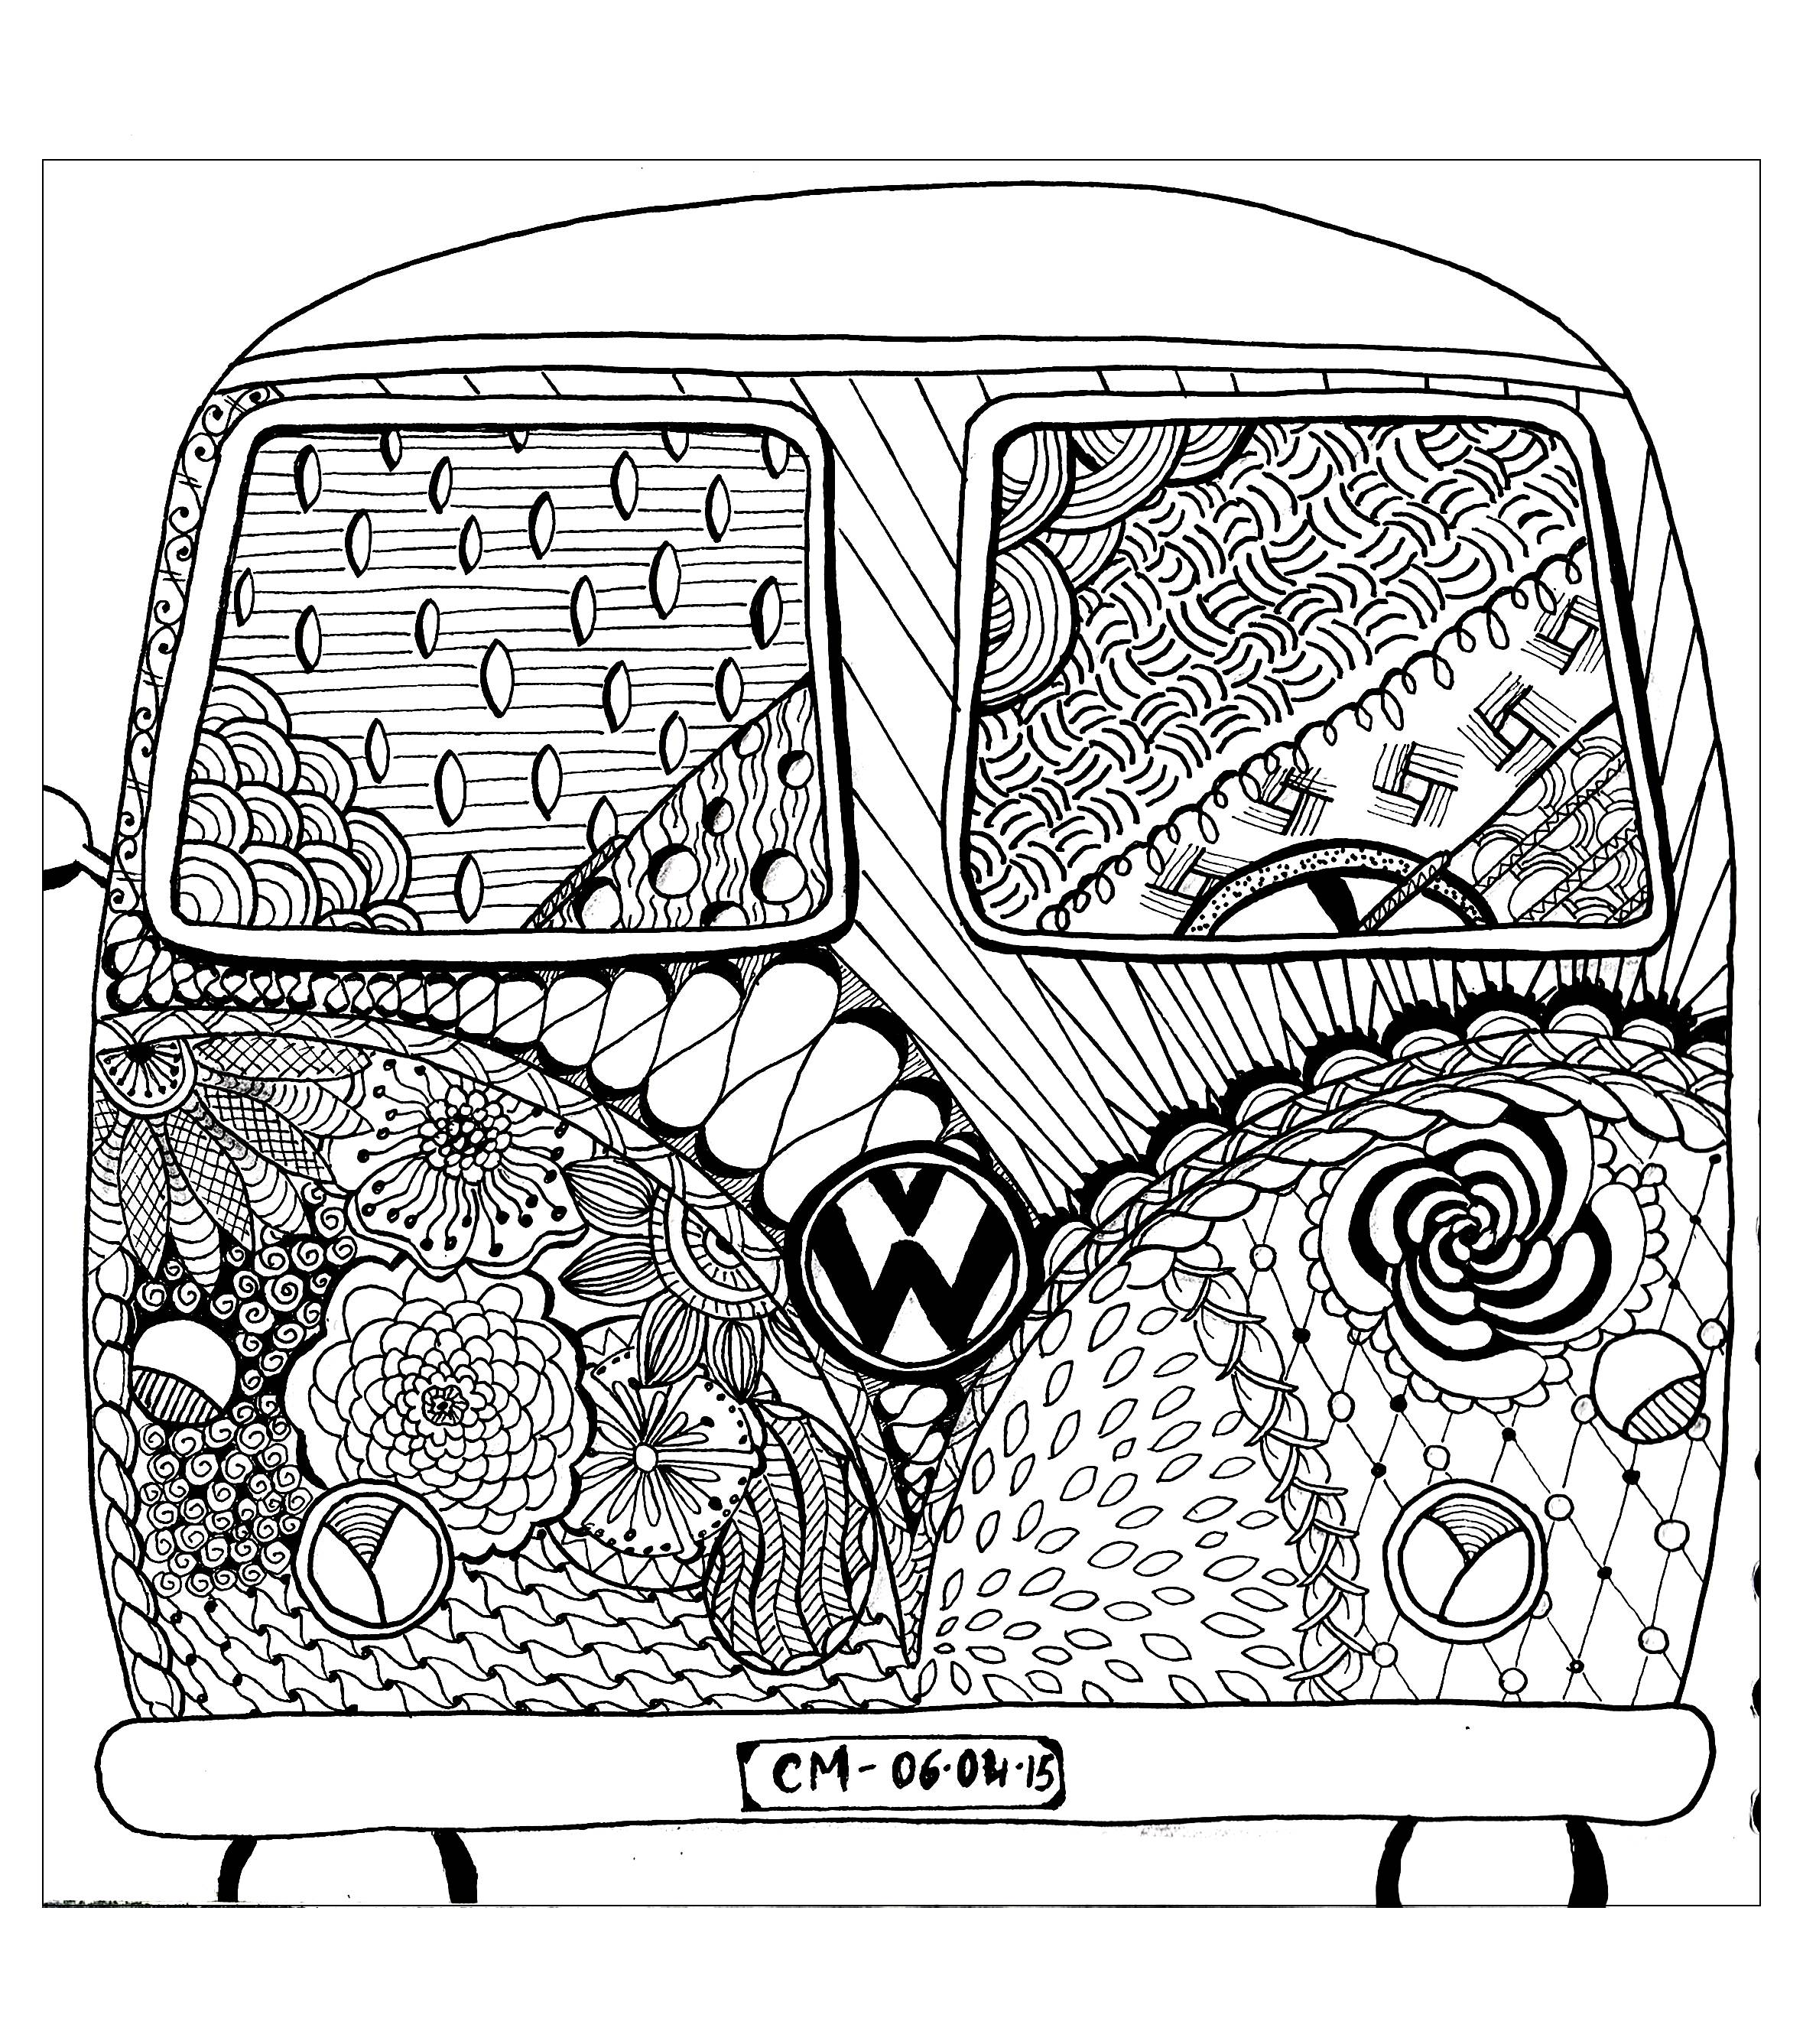 'Hippie camper', coloriage original style Zentangle  Voir l'oeuvre originale